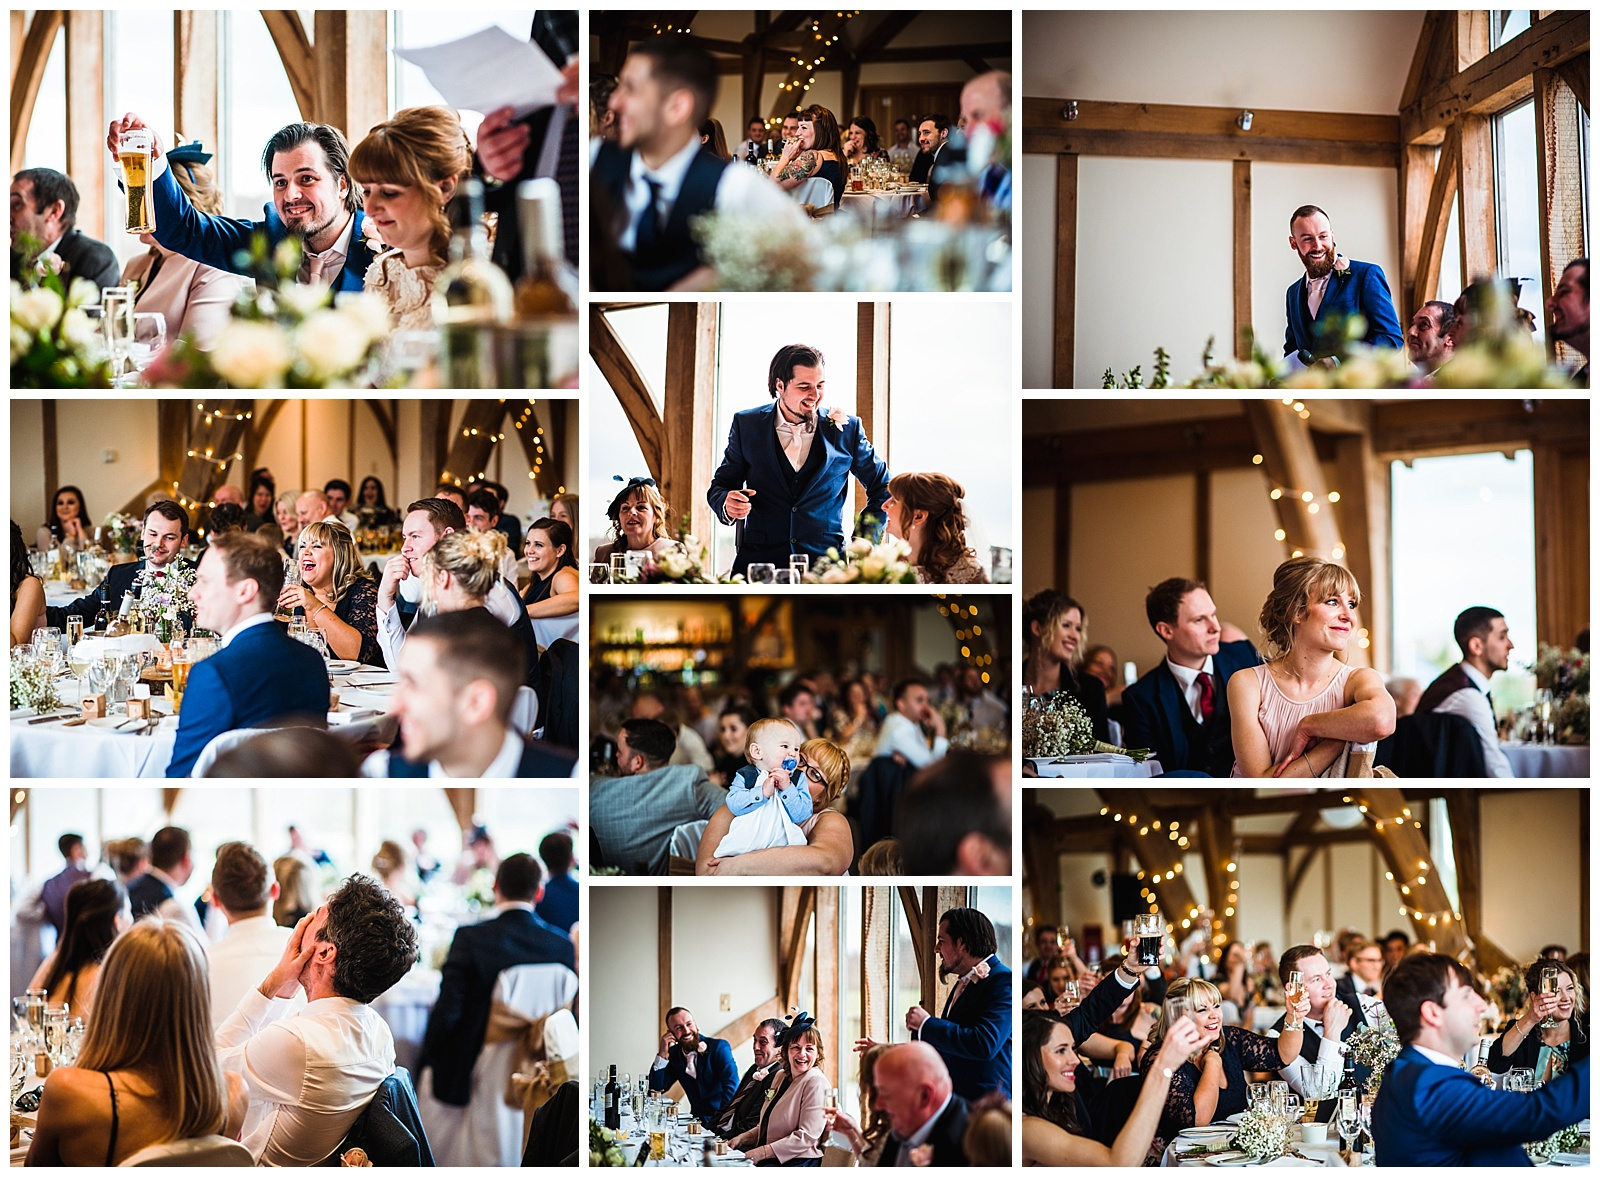 Wedding speeches at Sandburn Hall